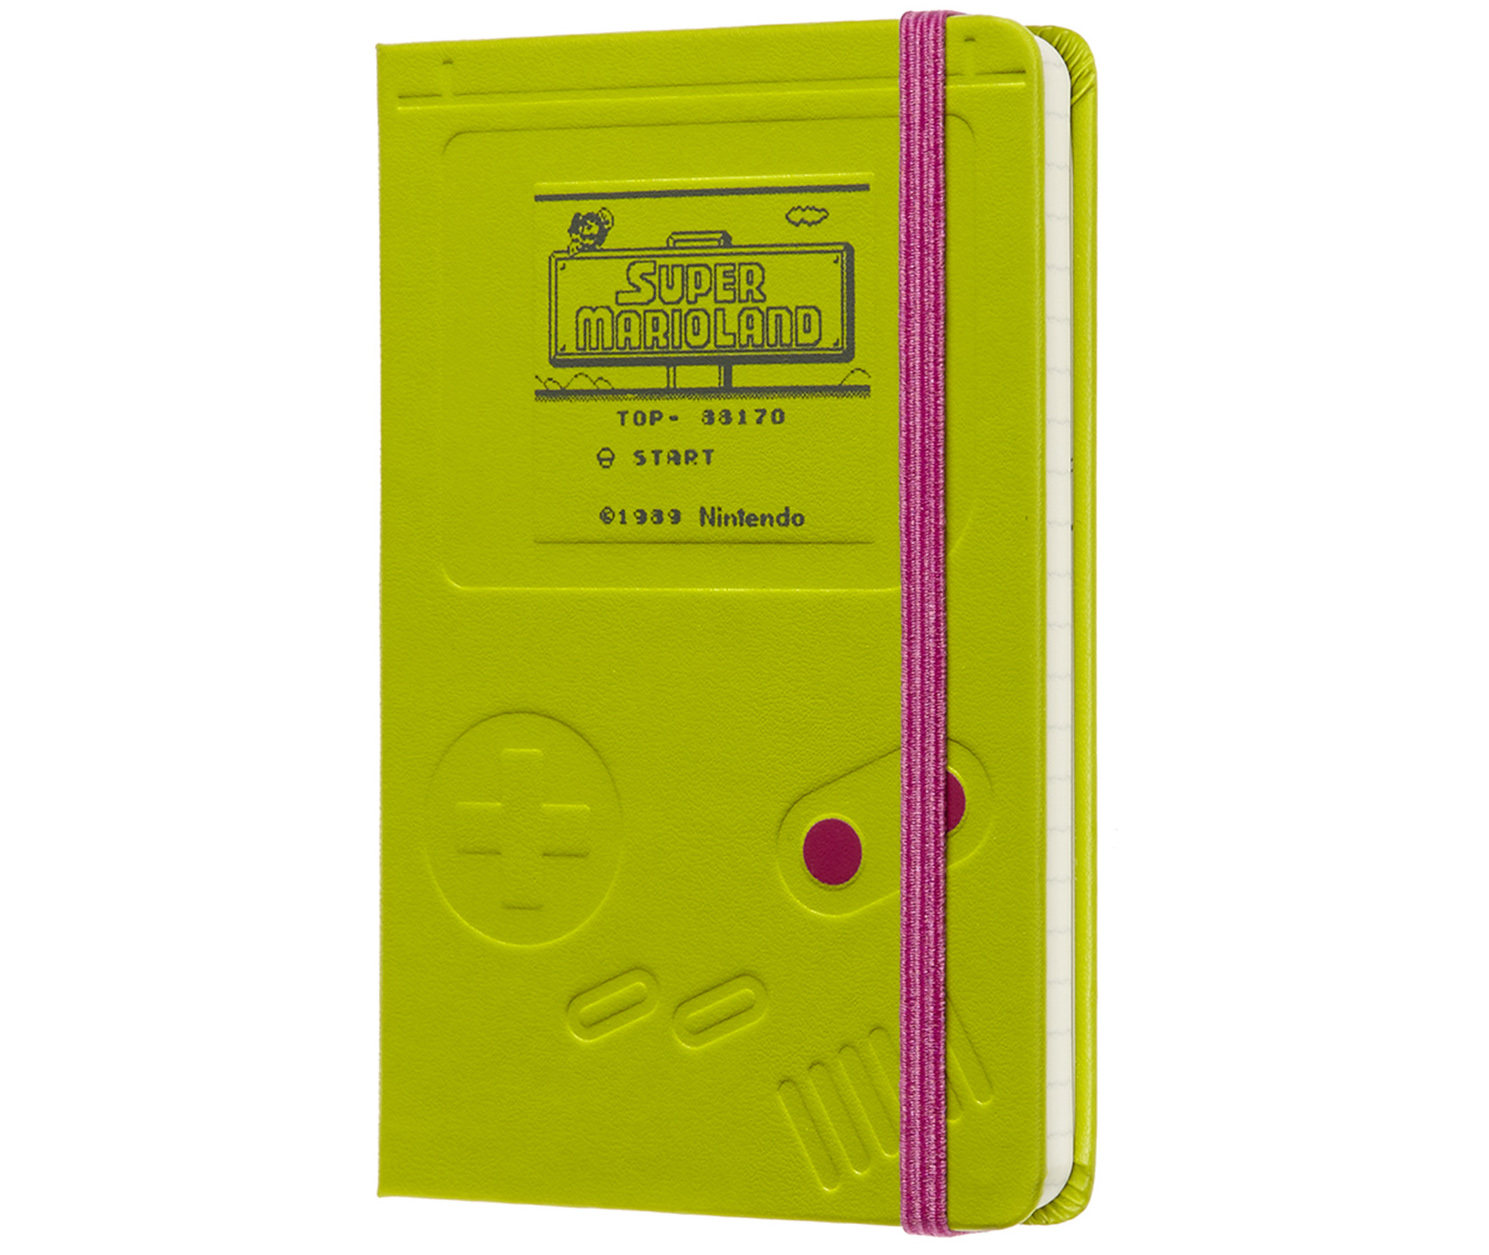 Now youre journaling with power with this mario branded moleskine i would have loved to have these in the old days though some smb3 gear would probably have been more timely fandeluxe